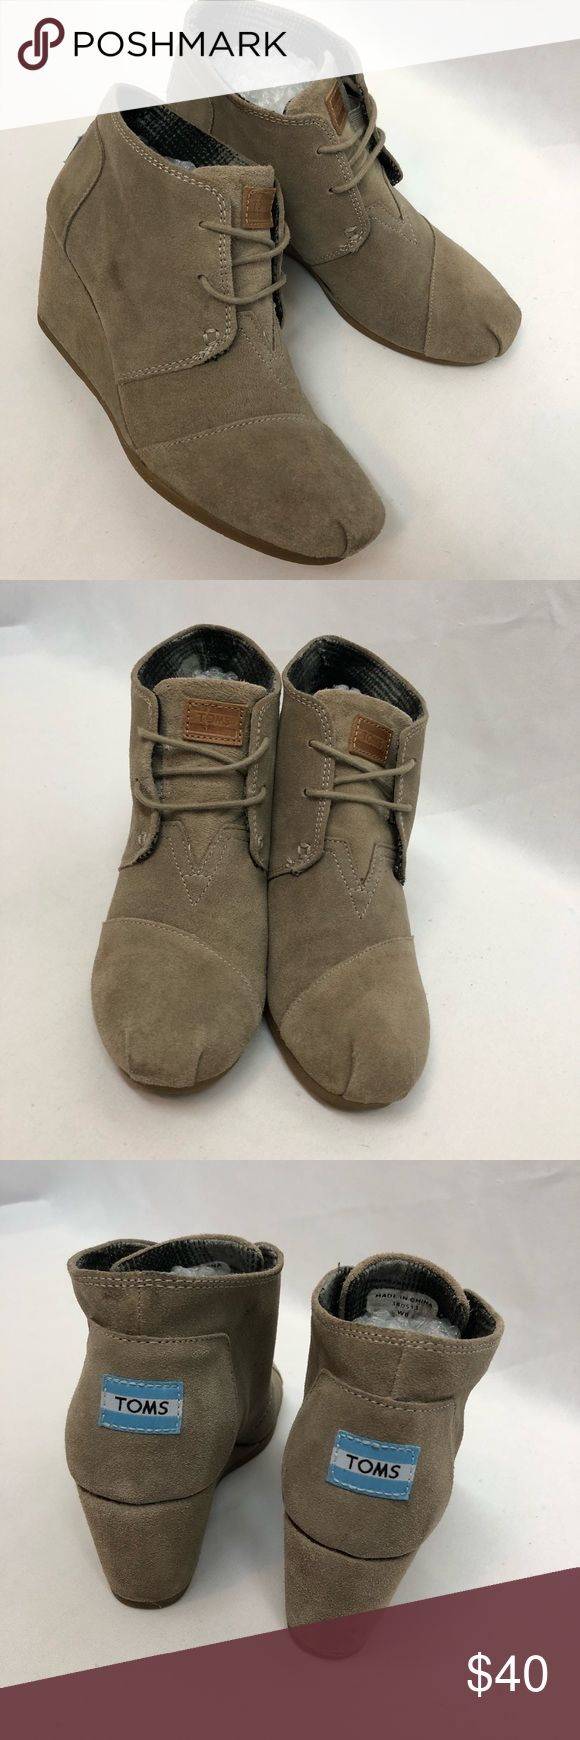 TOMS Wedge Boots TOMS wedge boots. Size W8. Excellent used condition. Some minor spots here and there. Nothing major and I haven't tried to clean. Toms Shoes Ankle Boots & Booties